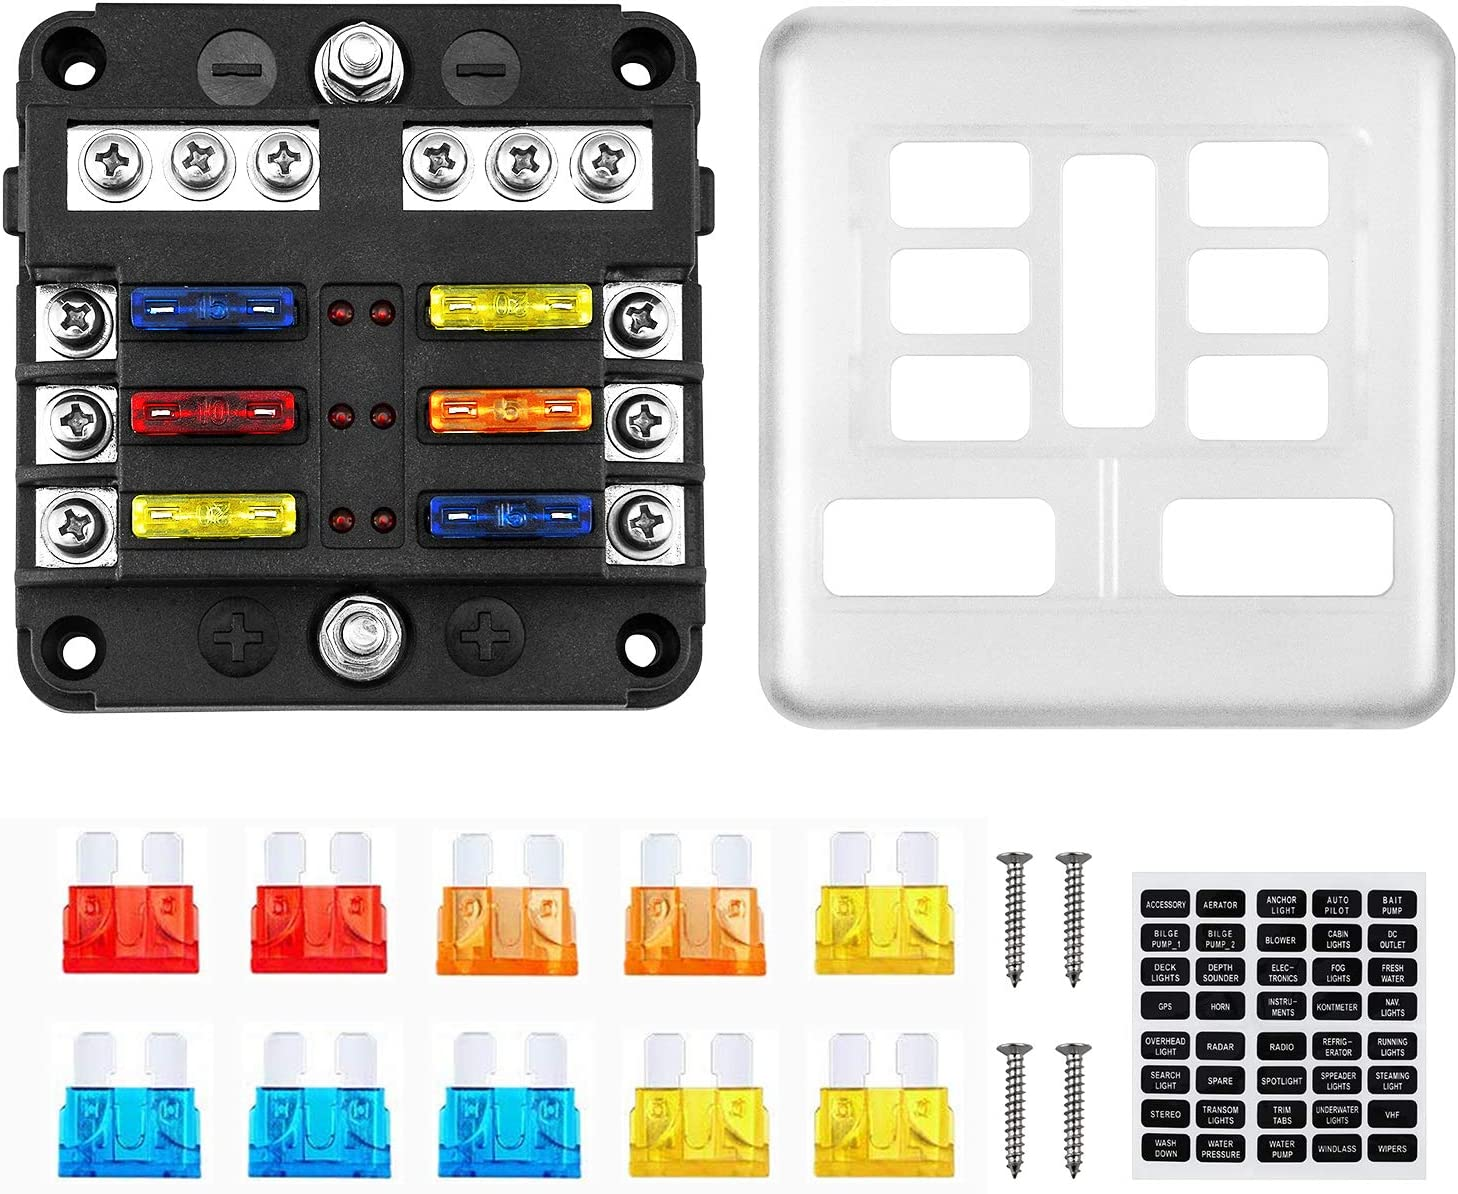 bus fuse box amazon com kohree 6 way 12v blade fuse block 12 volt waterproof bus bar fuse box kohree 6 way 12v blade fuse block 12